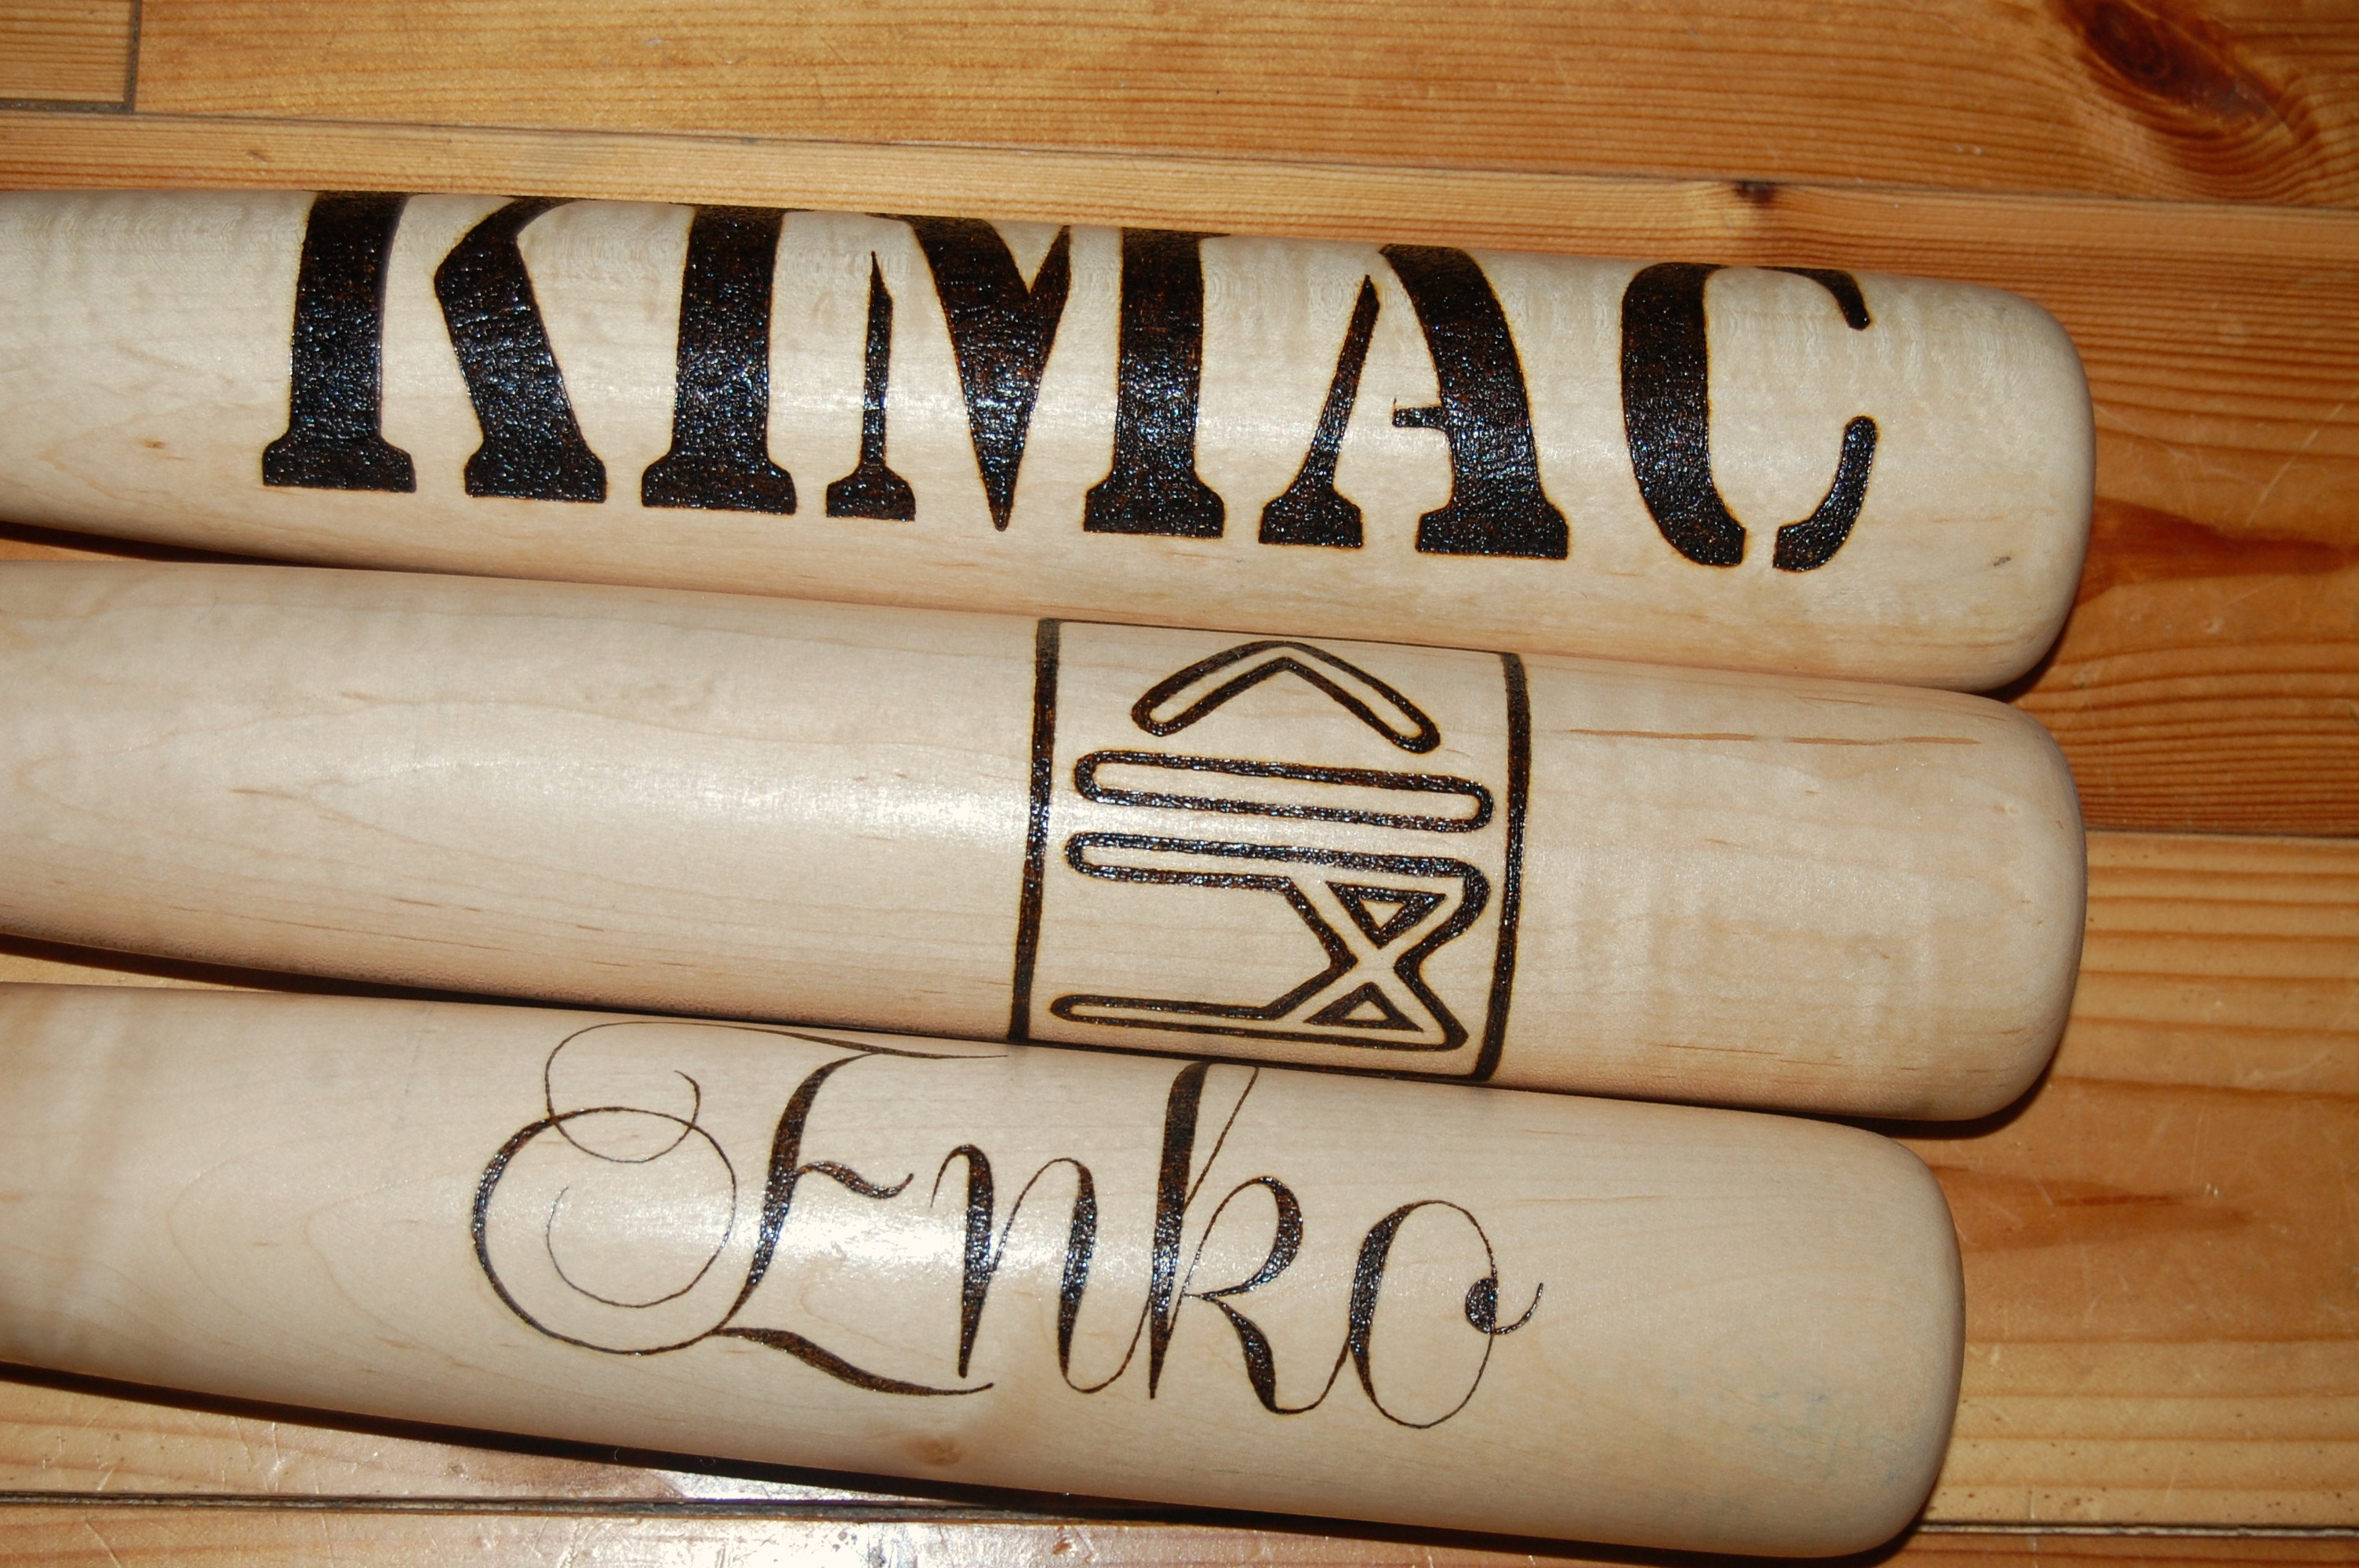 Decorative baseball bats